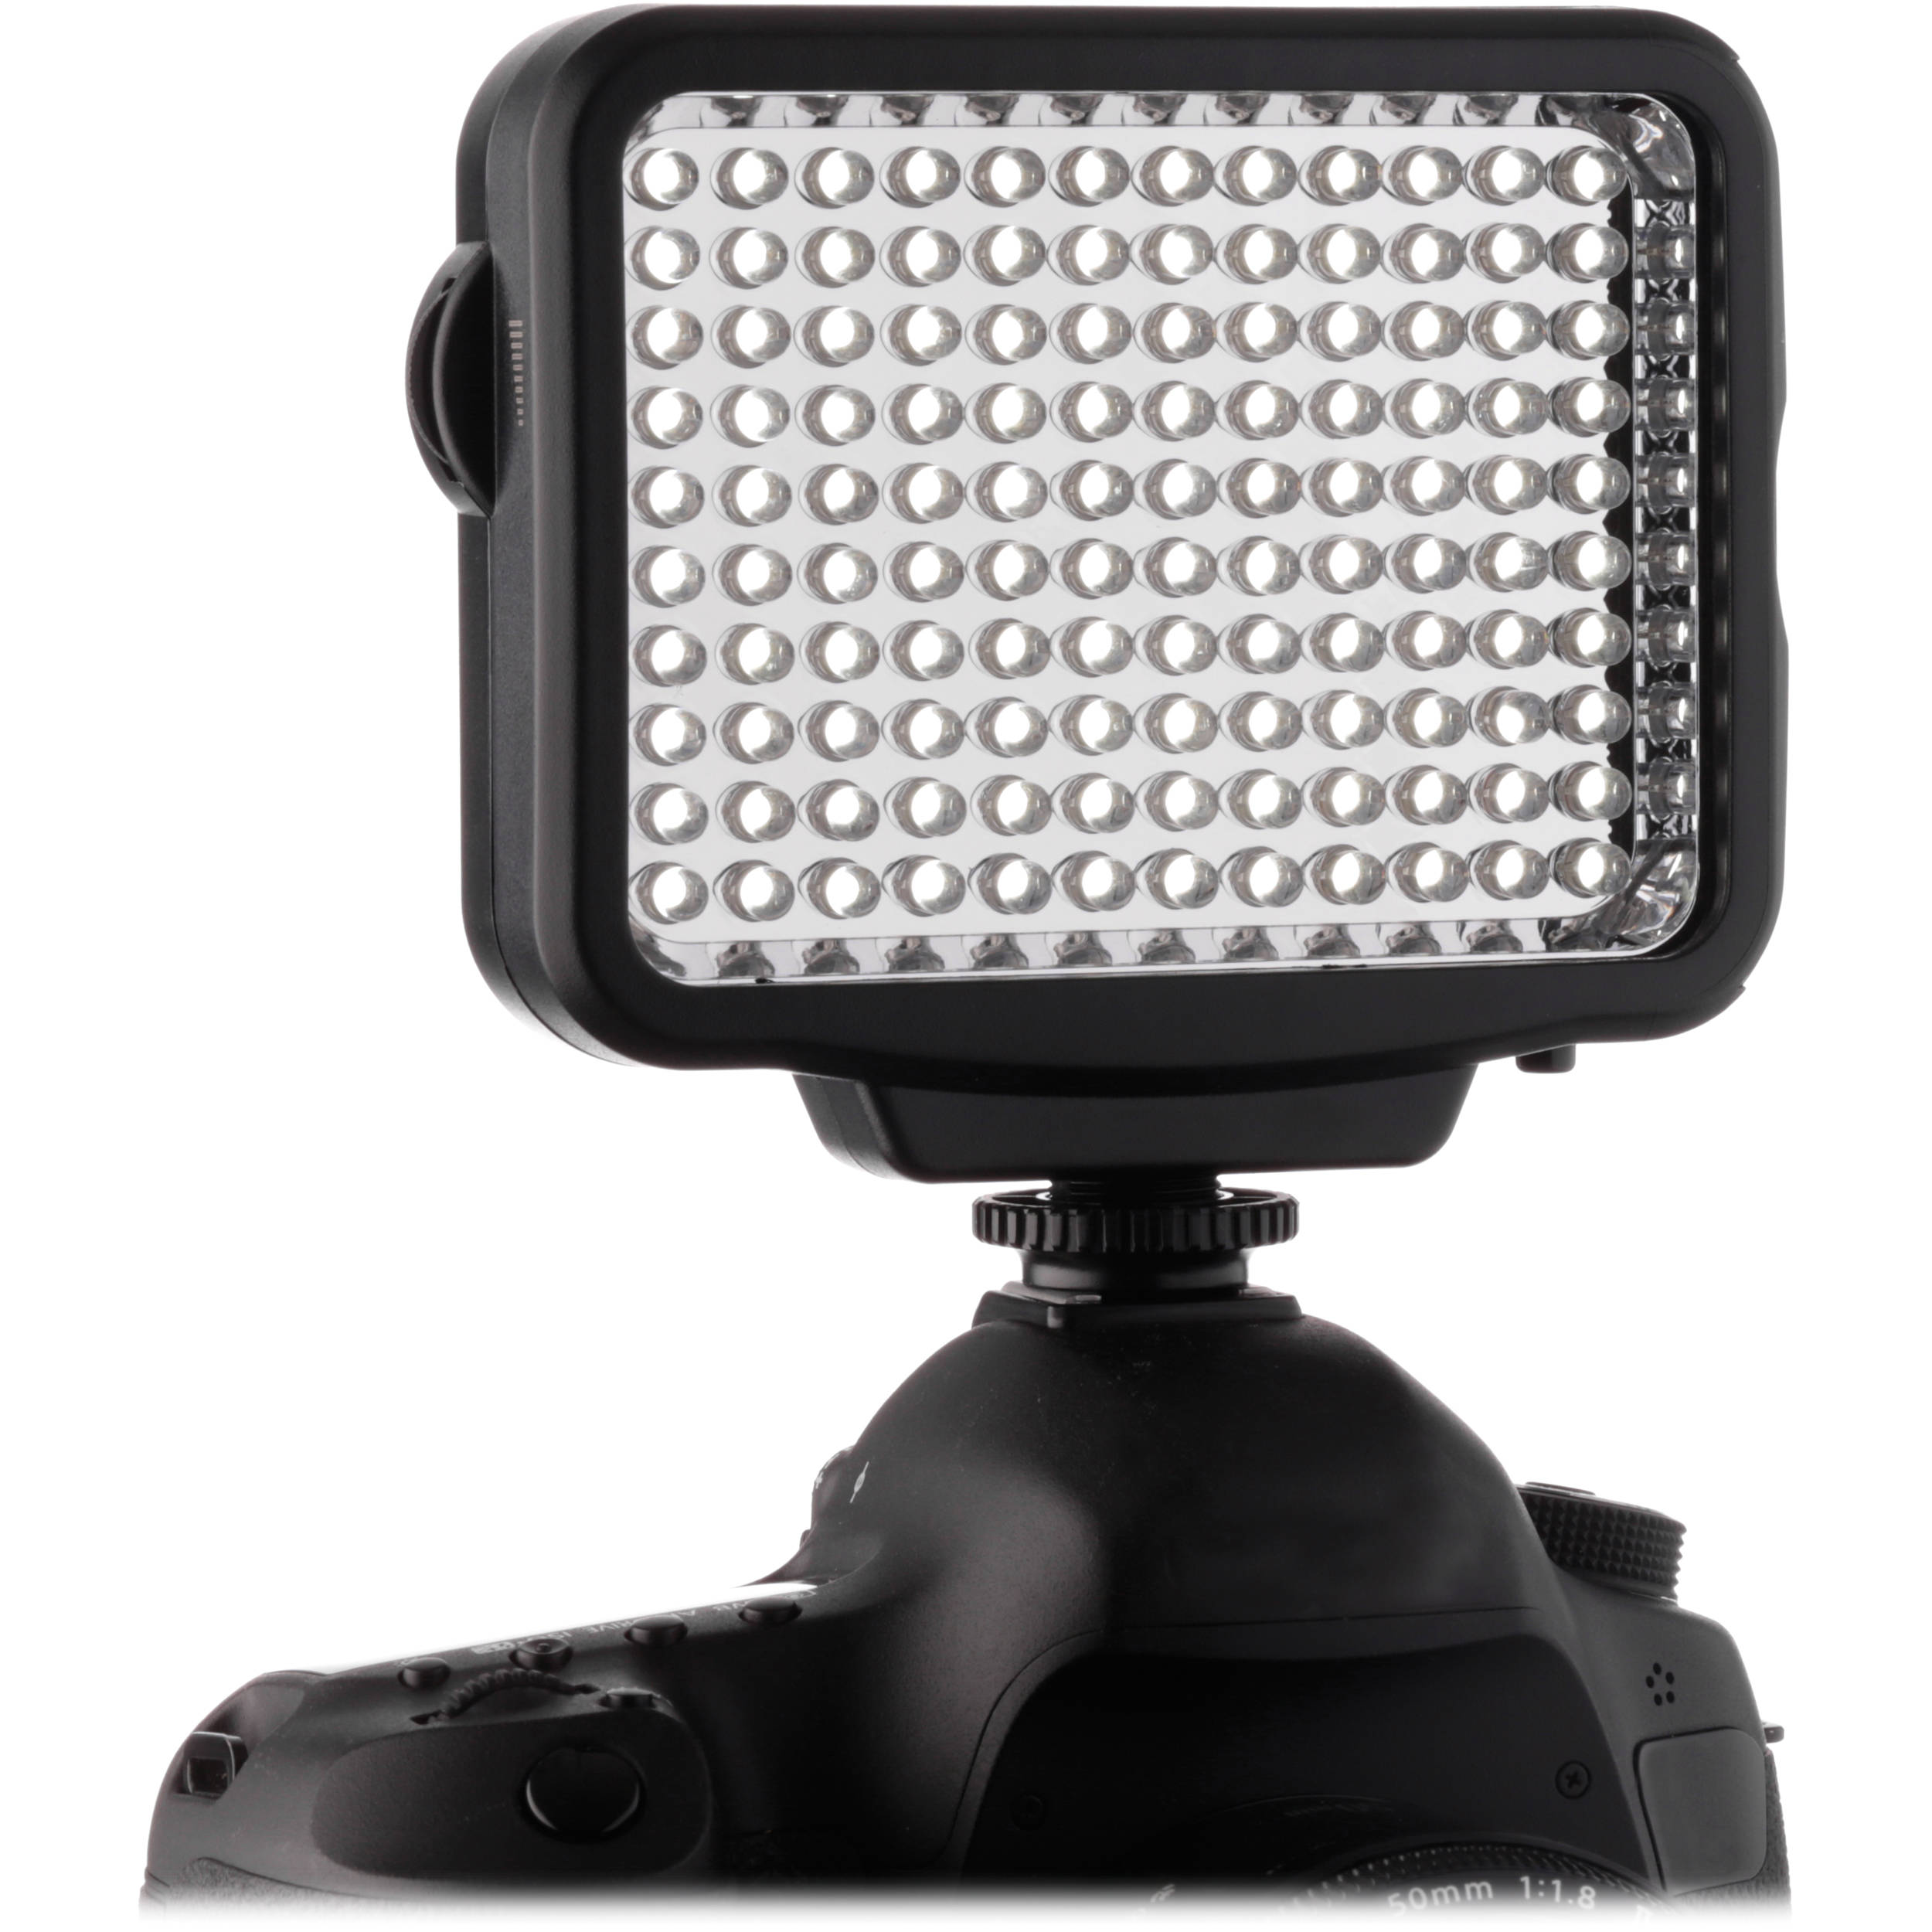 Dimmable 120 Led On Light Genaray Camera 5300 Compact 1K3lFTJc